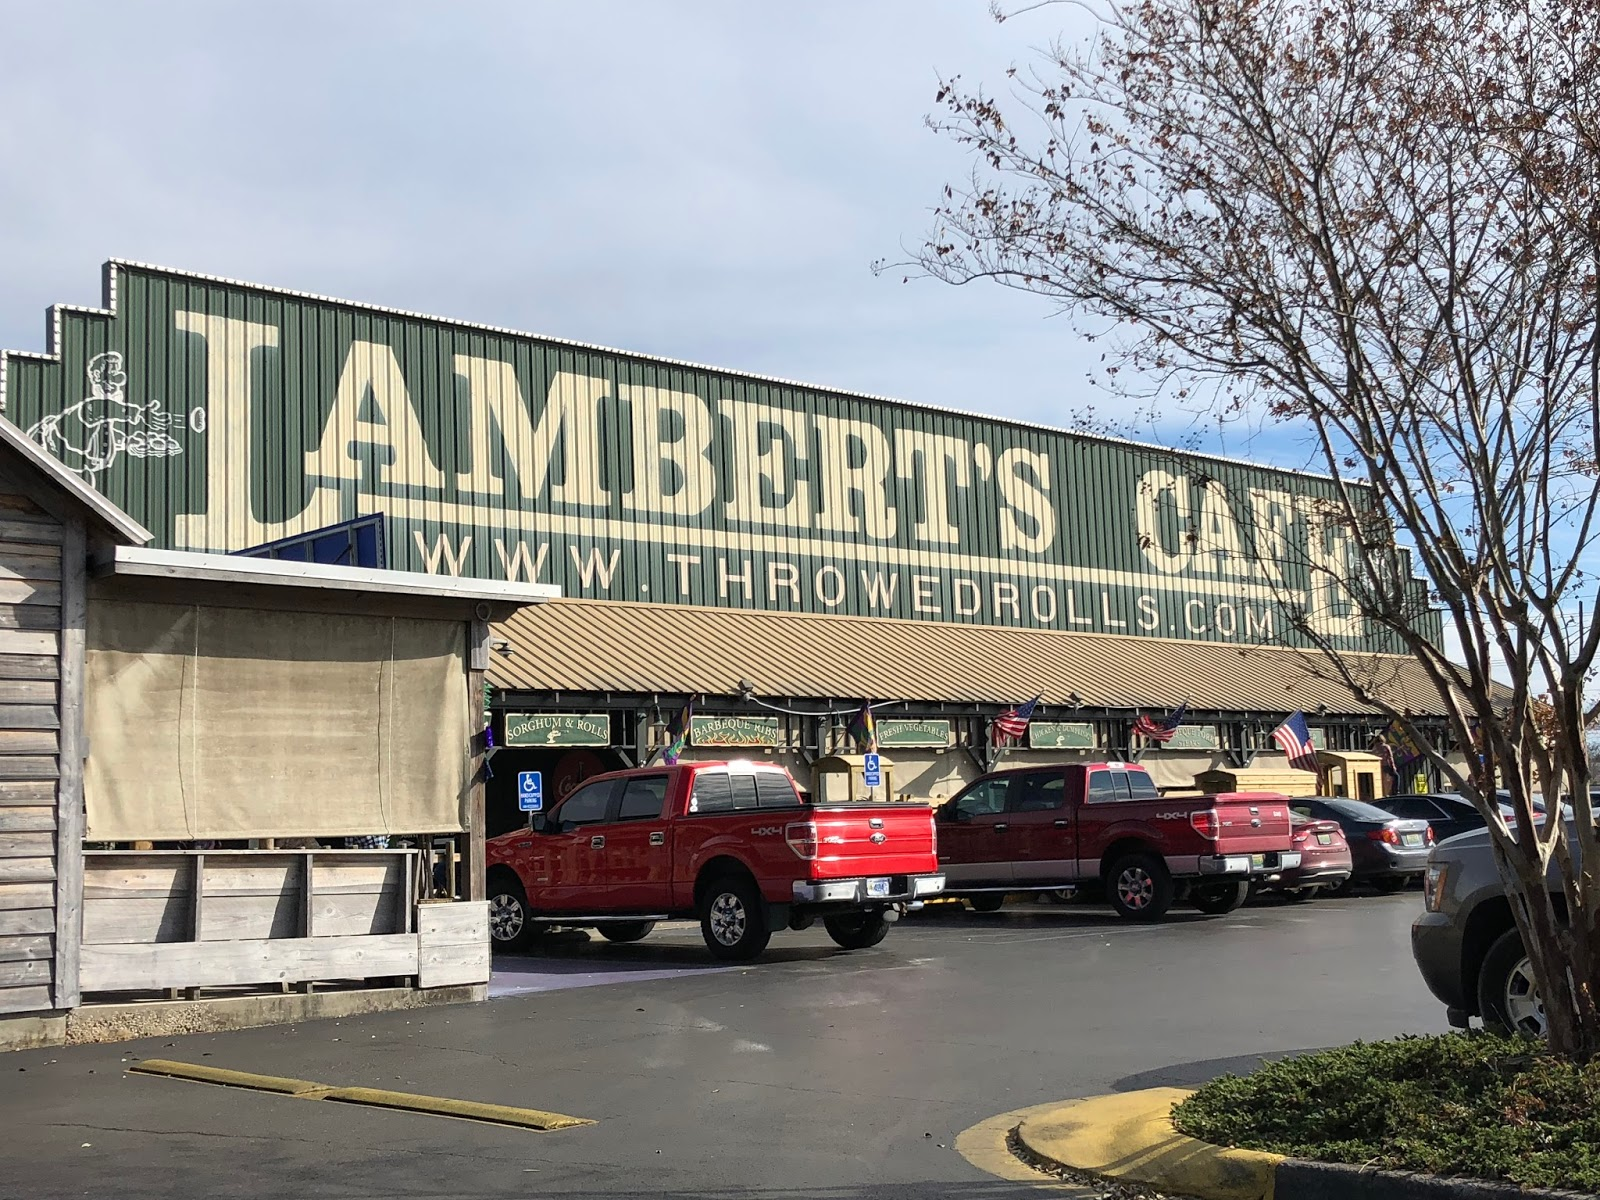 Lambert s home of the throwed rolls foley al homemade ftempo for Living room trackid sp 006